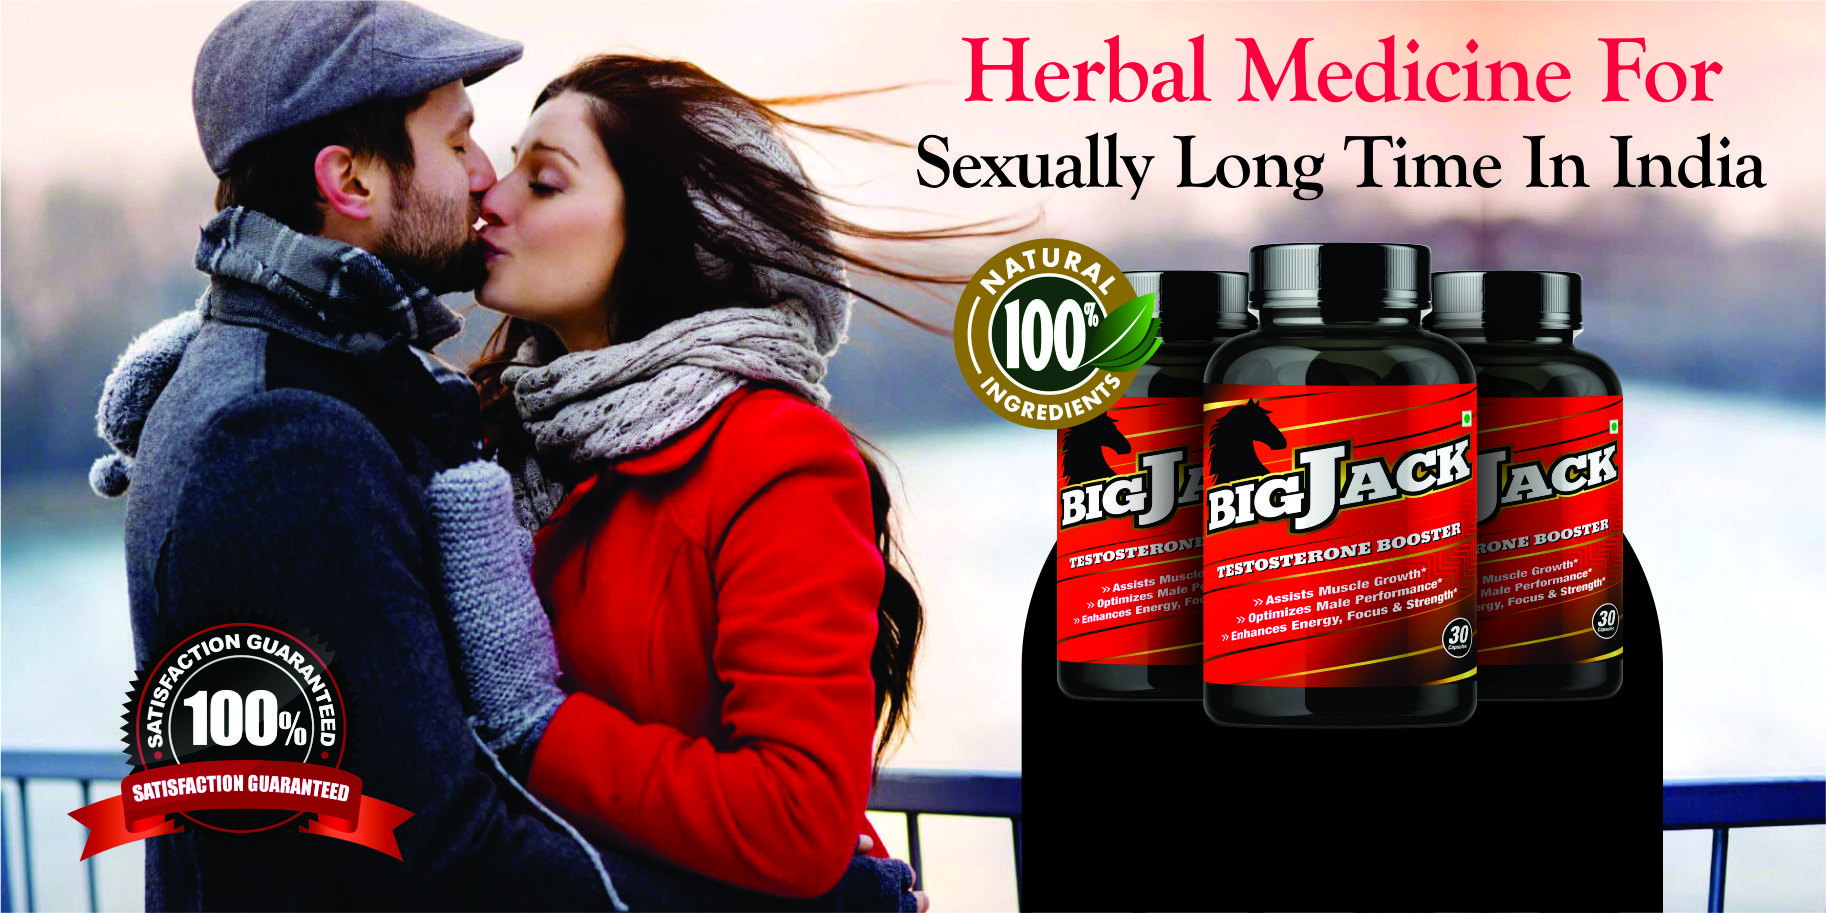 The Best & Herbal Remedy For Better Sexual Power And Long-Lasting Performance